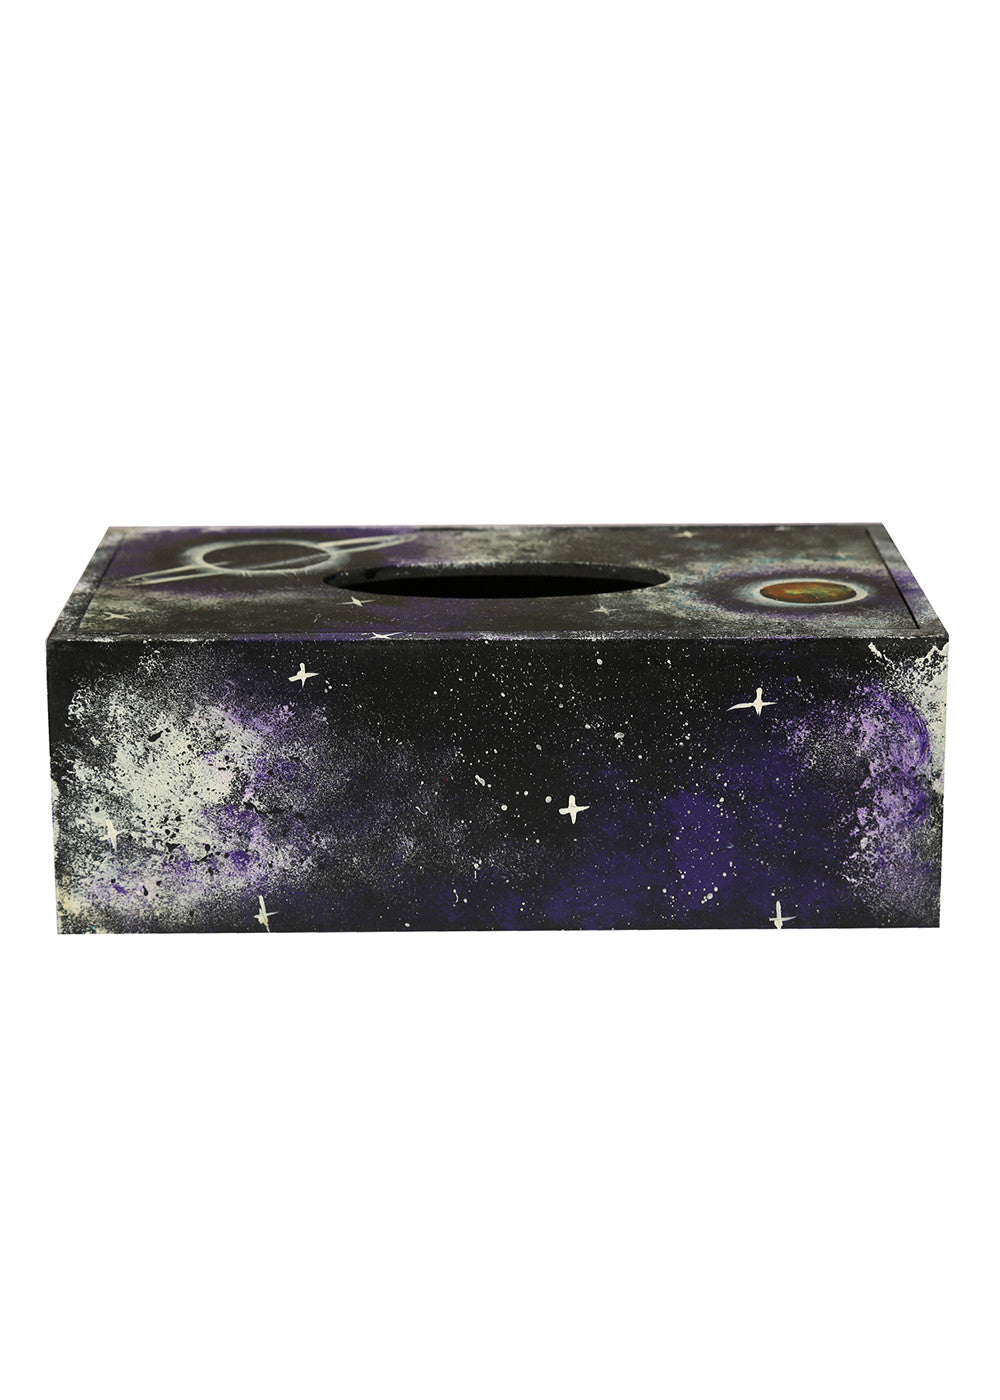 Hand-painted Secrets of Universe Tissue Box Holder - RANGRAGE